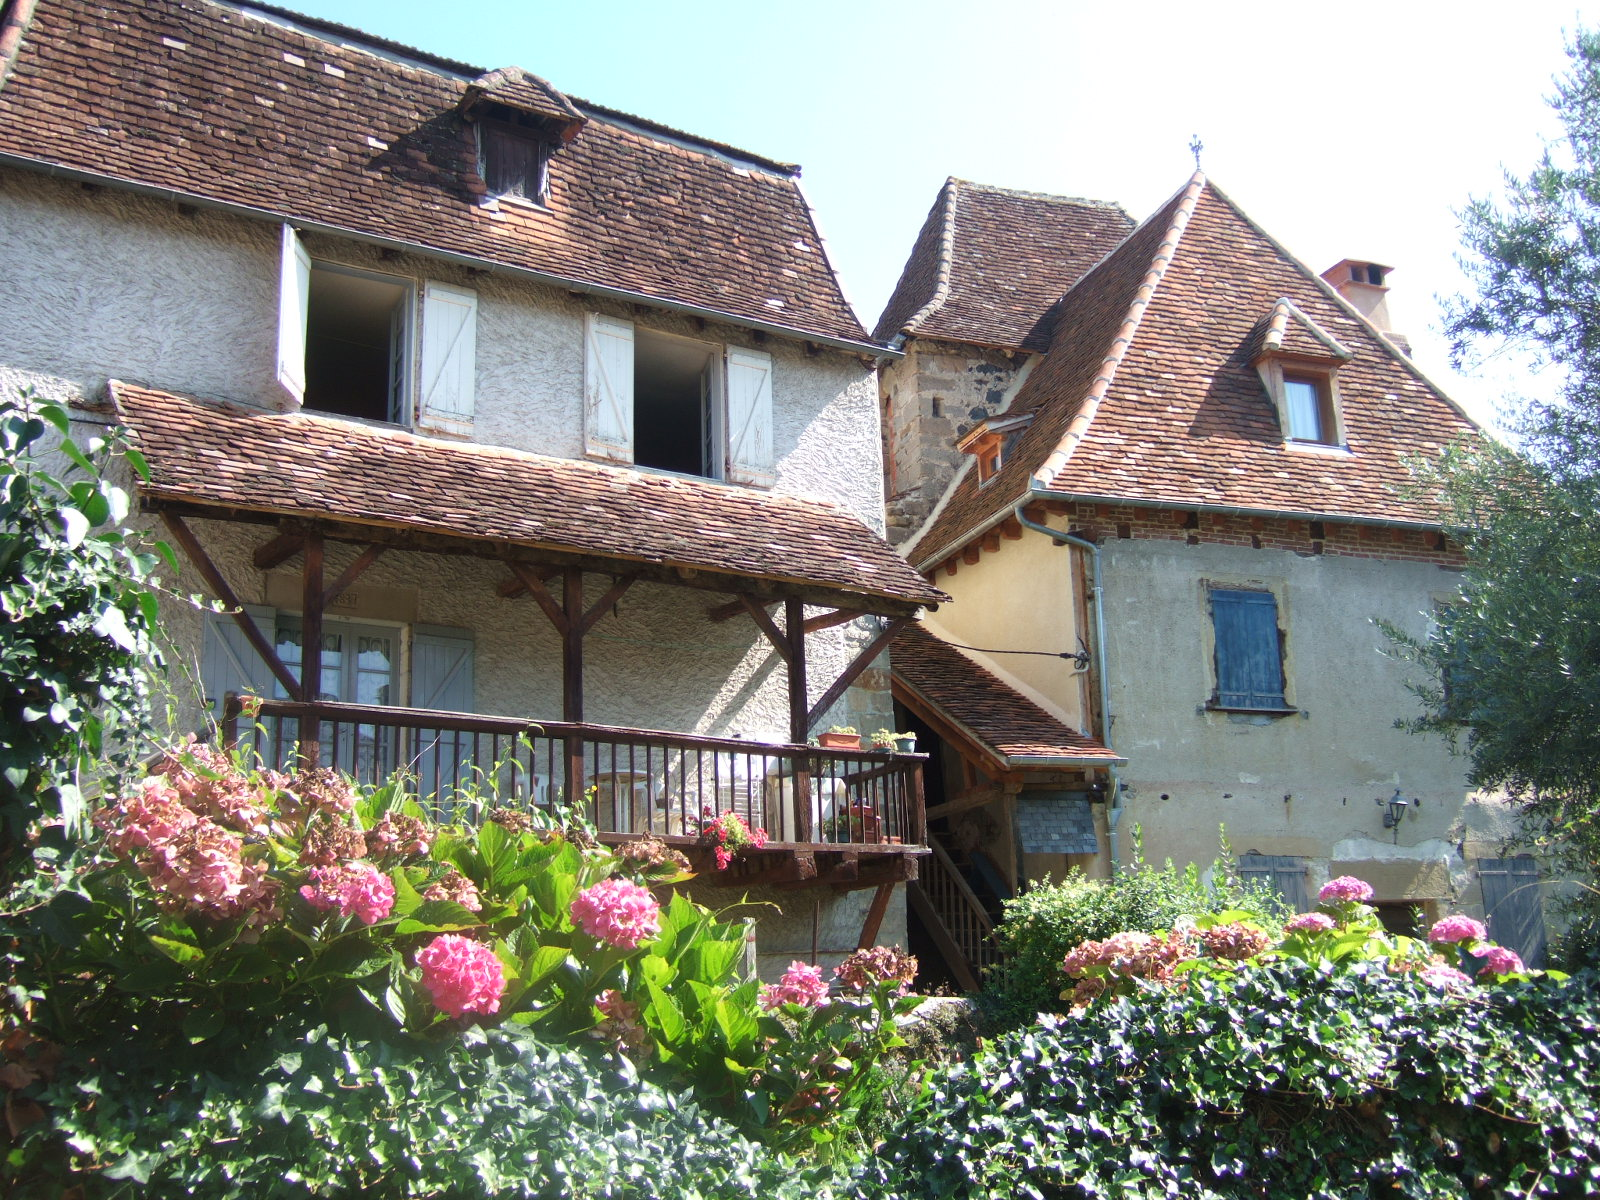 A house in the Dordogne